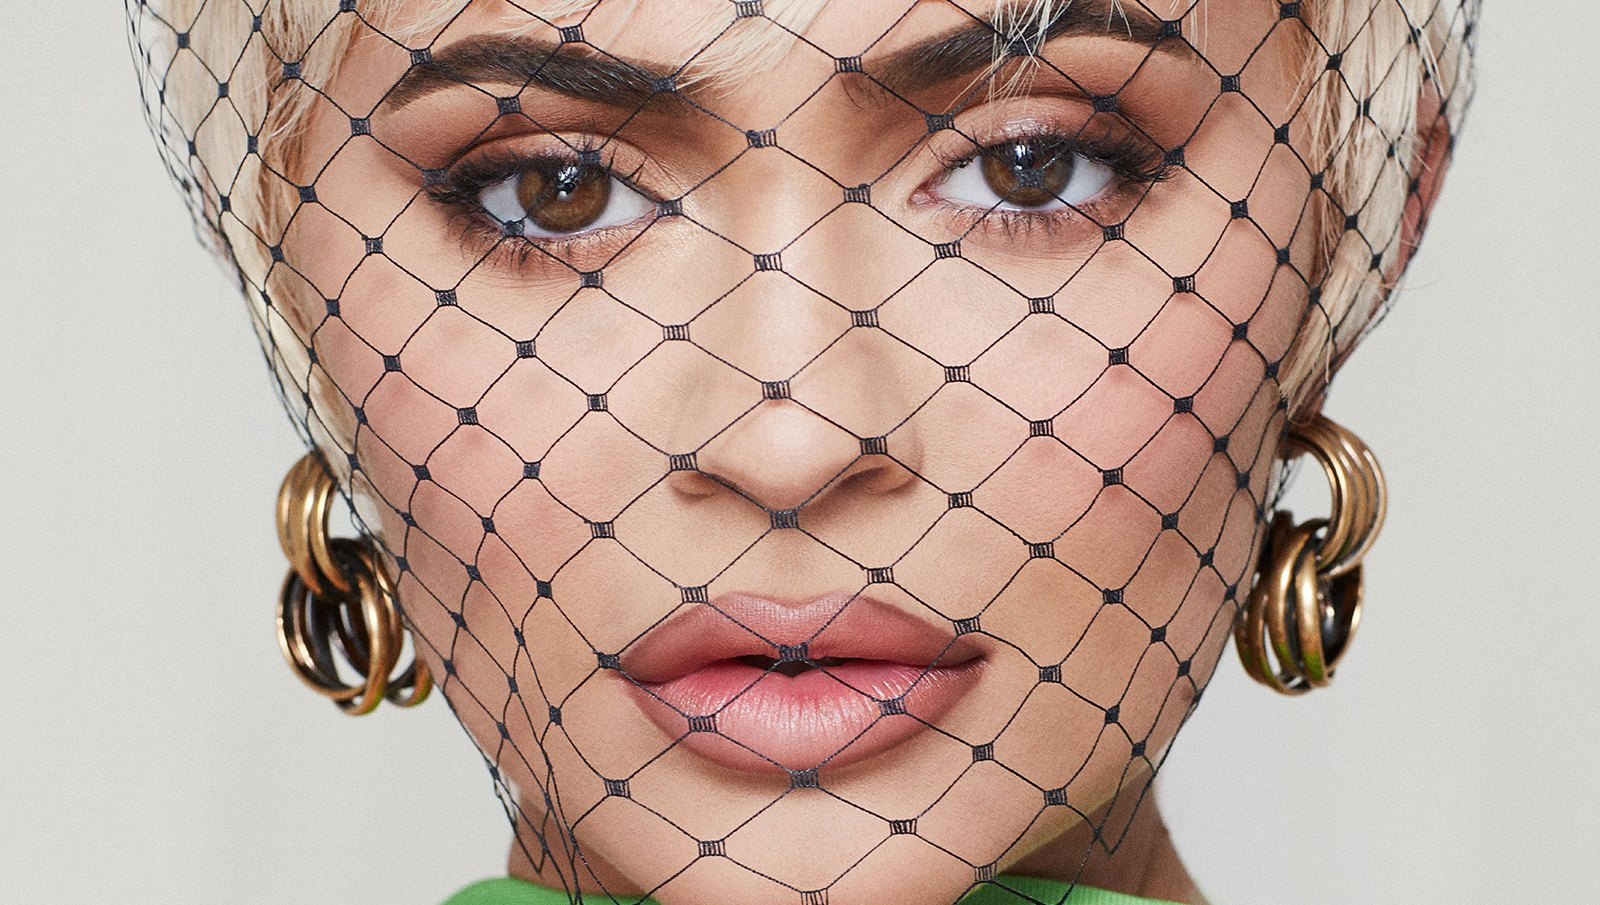 kylie jenner paper magazine Kylie Jenner Talks Plastic Surgery and Makeup